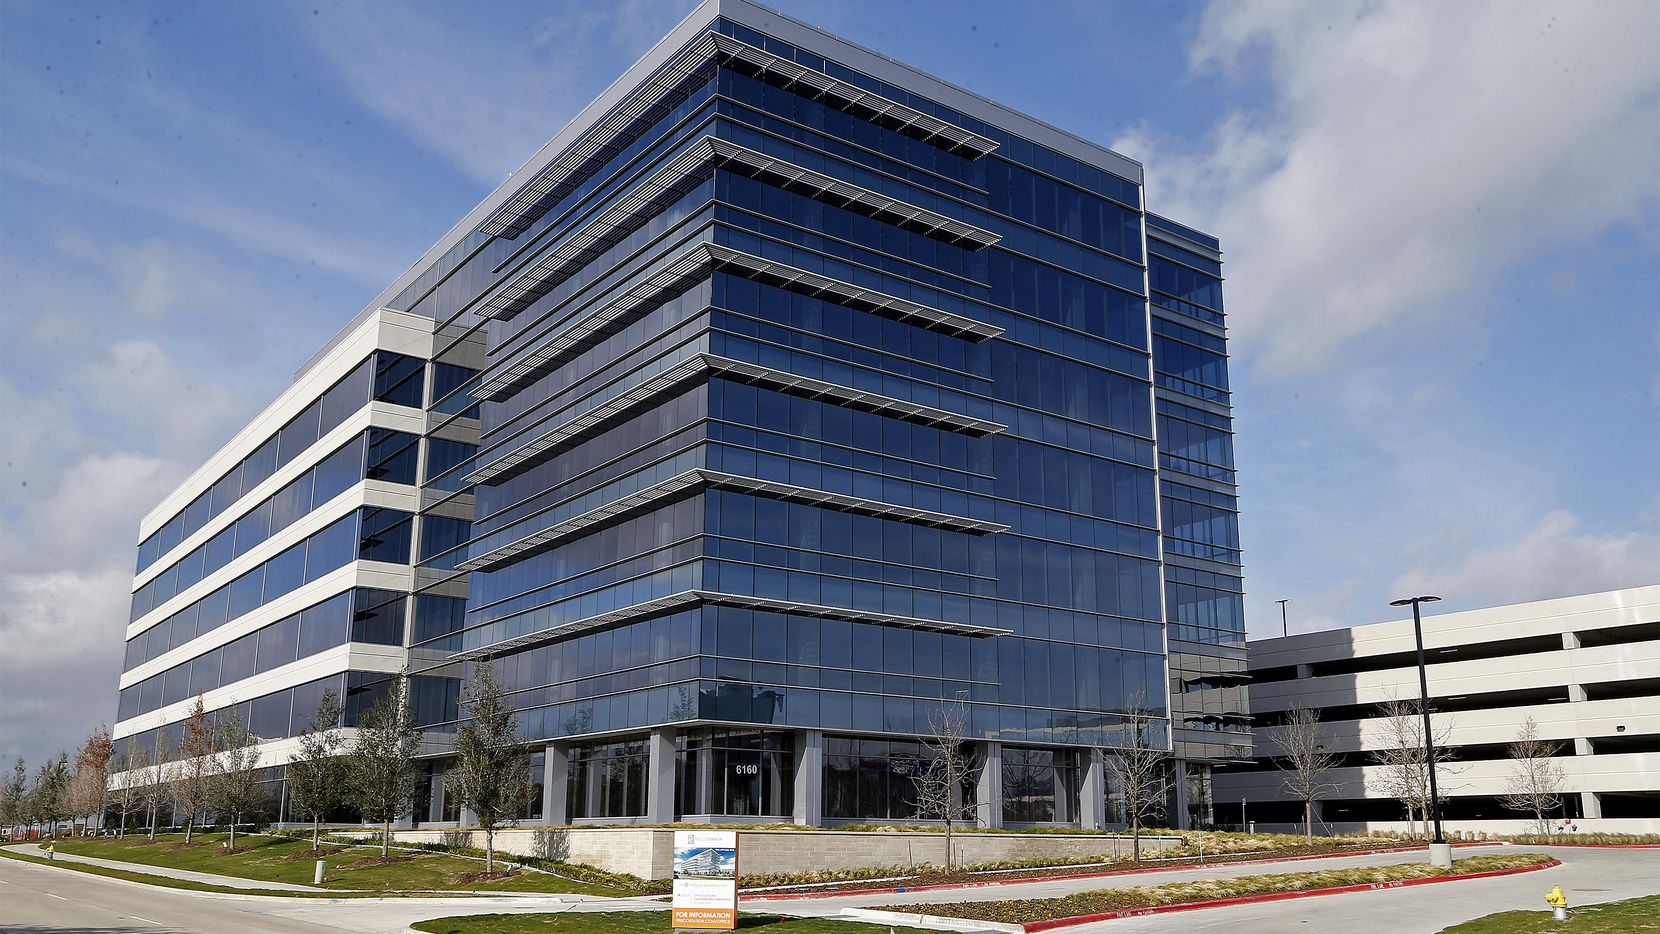 The first seven-story office building in Frisco Station has opened its doors just over a year after the groundbreaking.